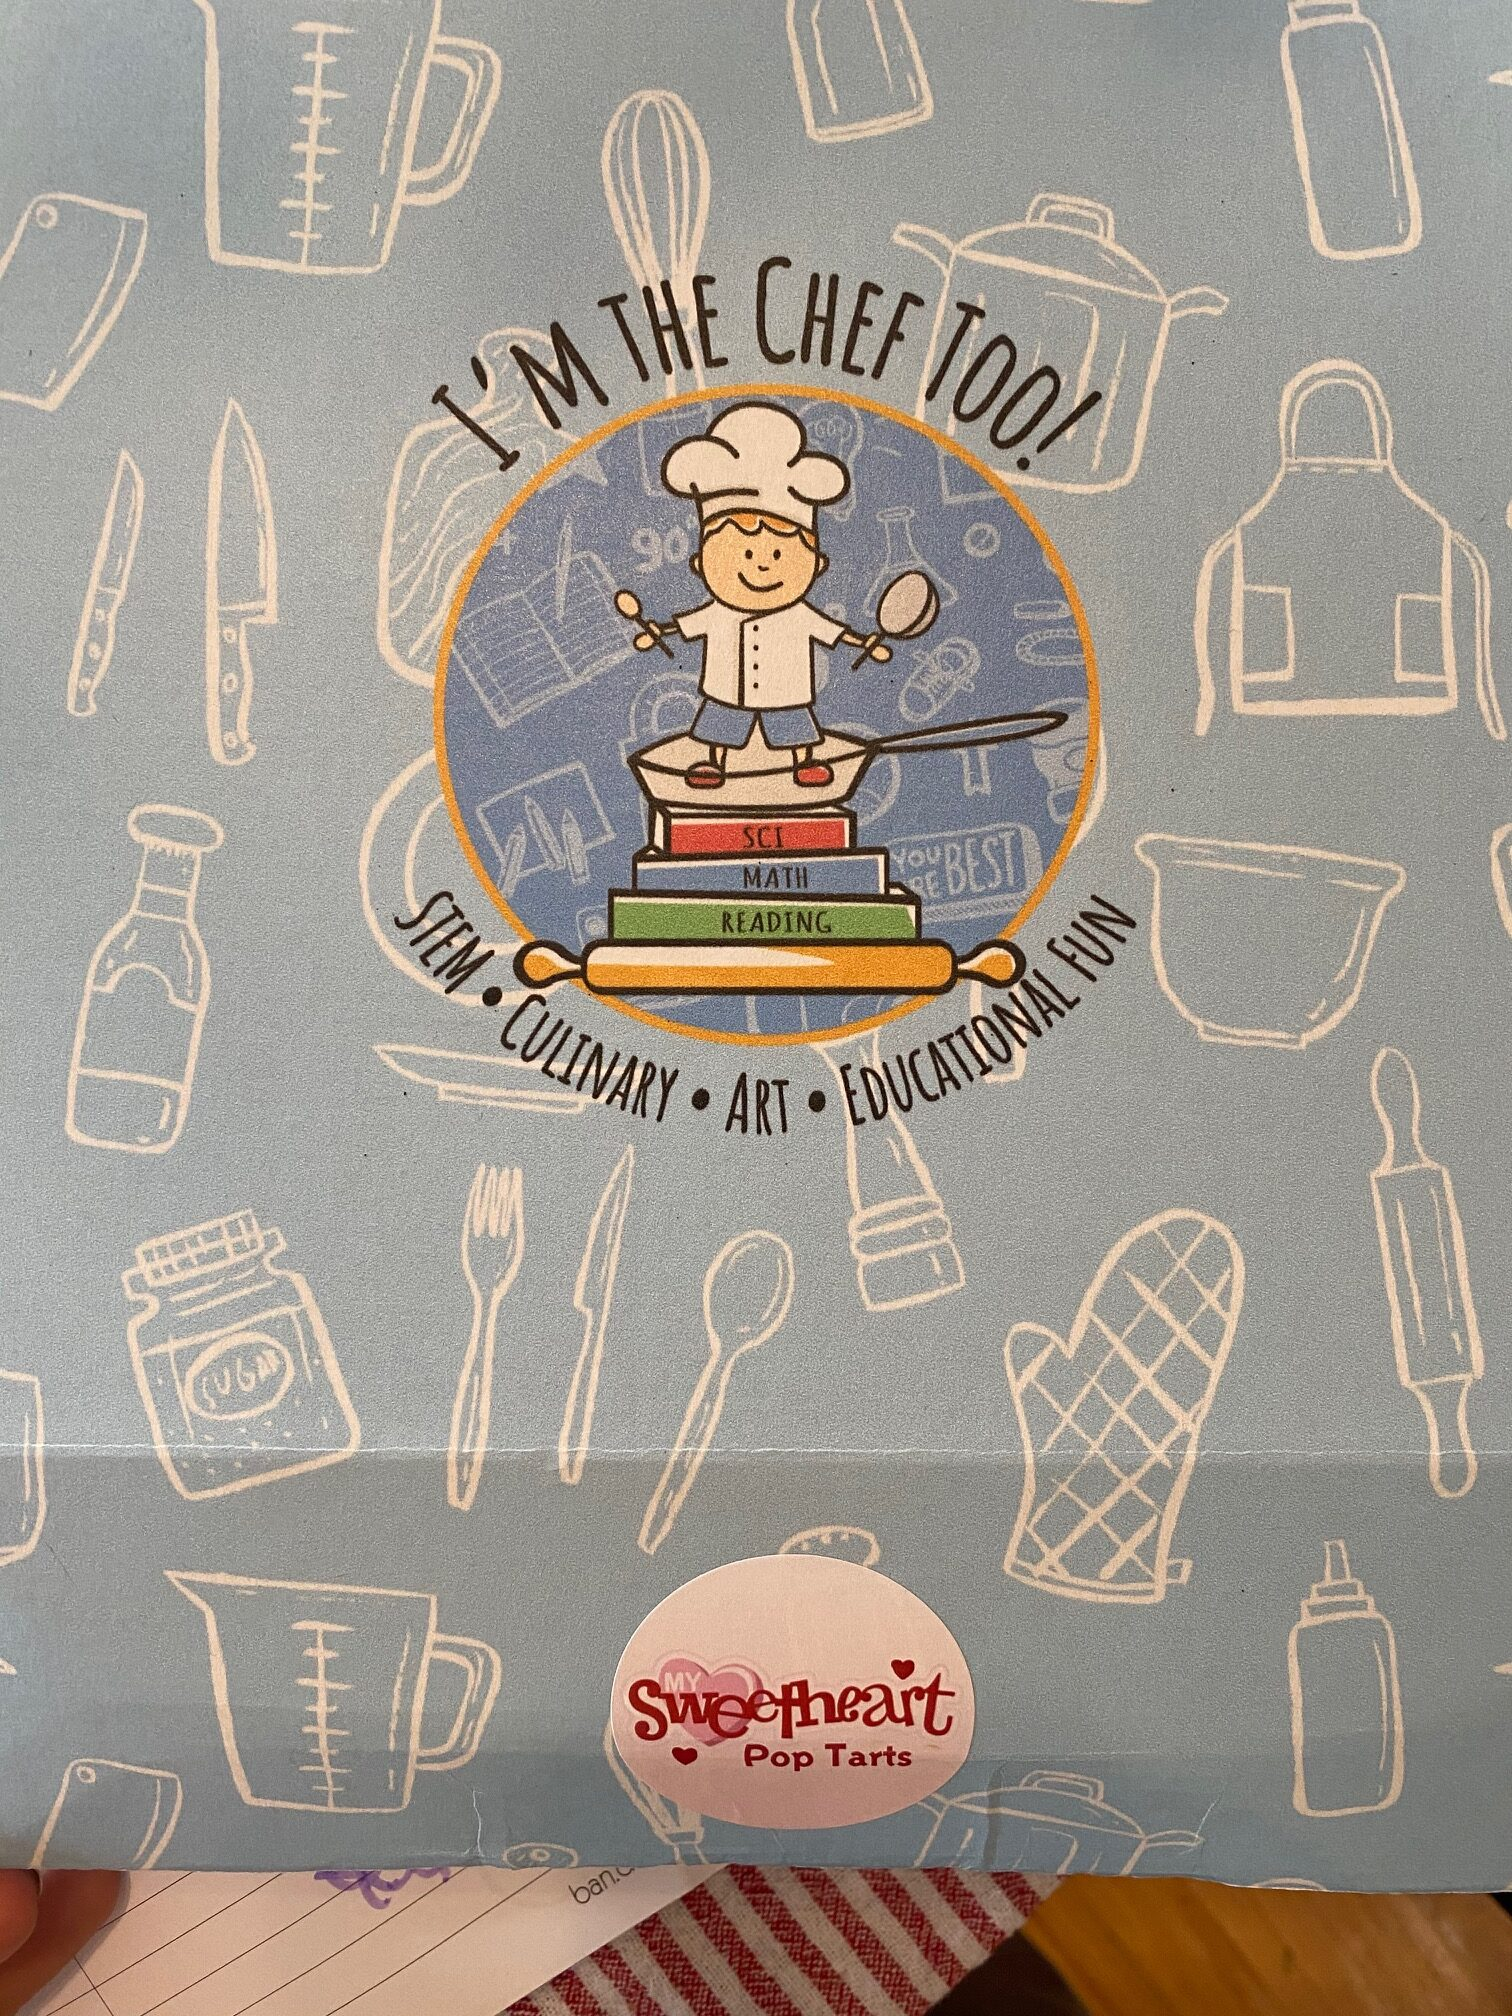 I am a Chef Too, a curated box that features food, STEM, and the Arts.